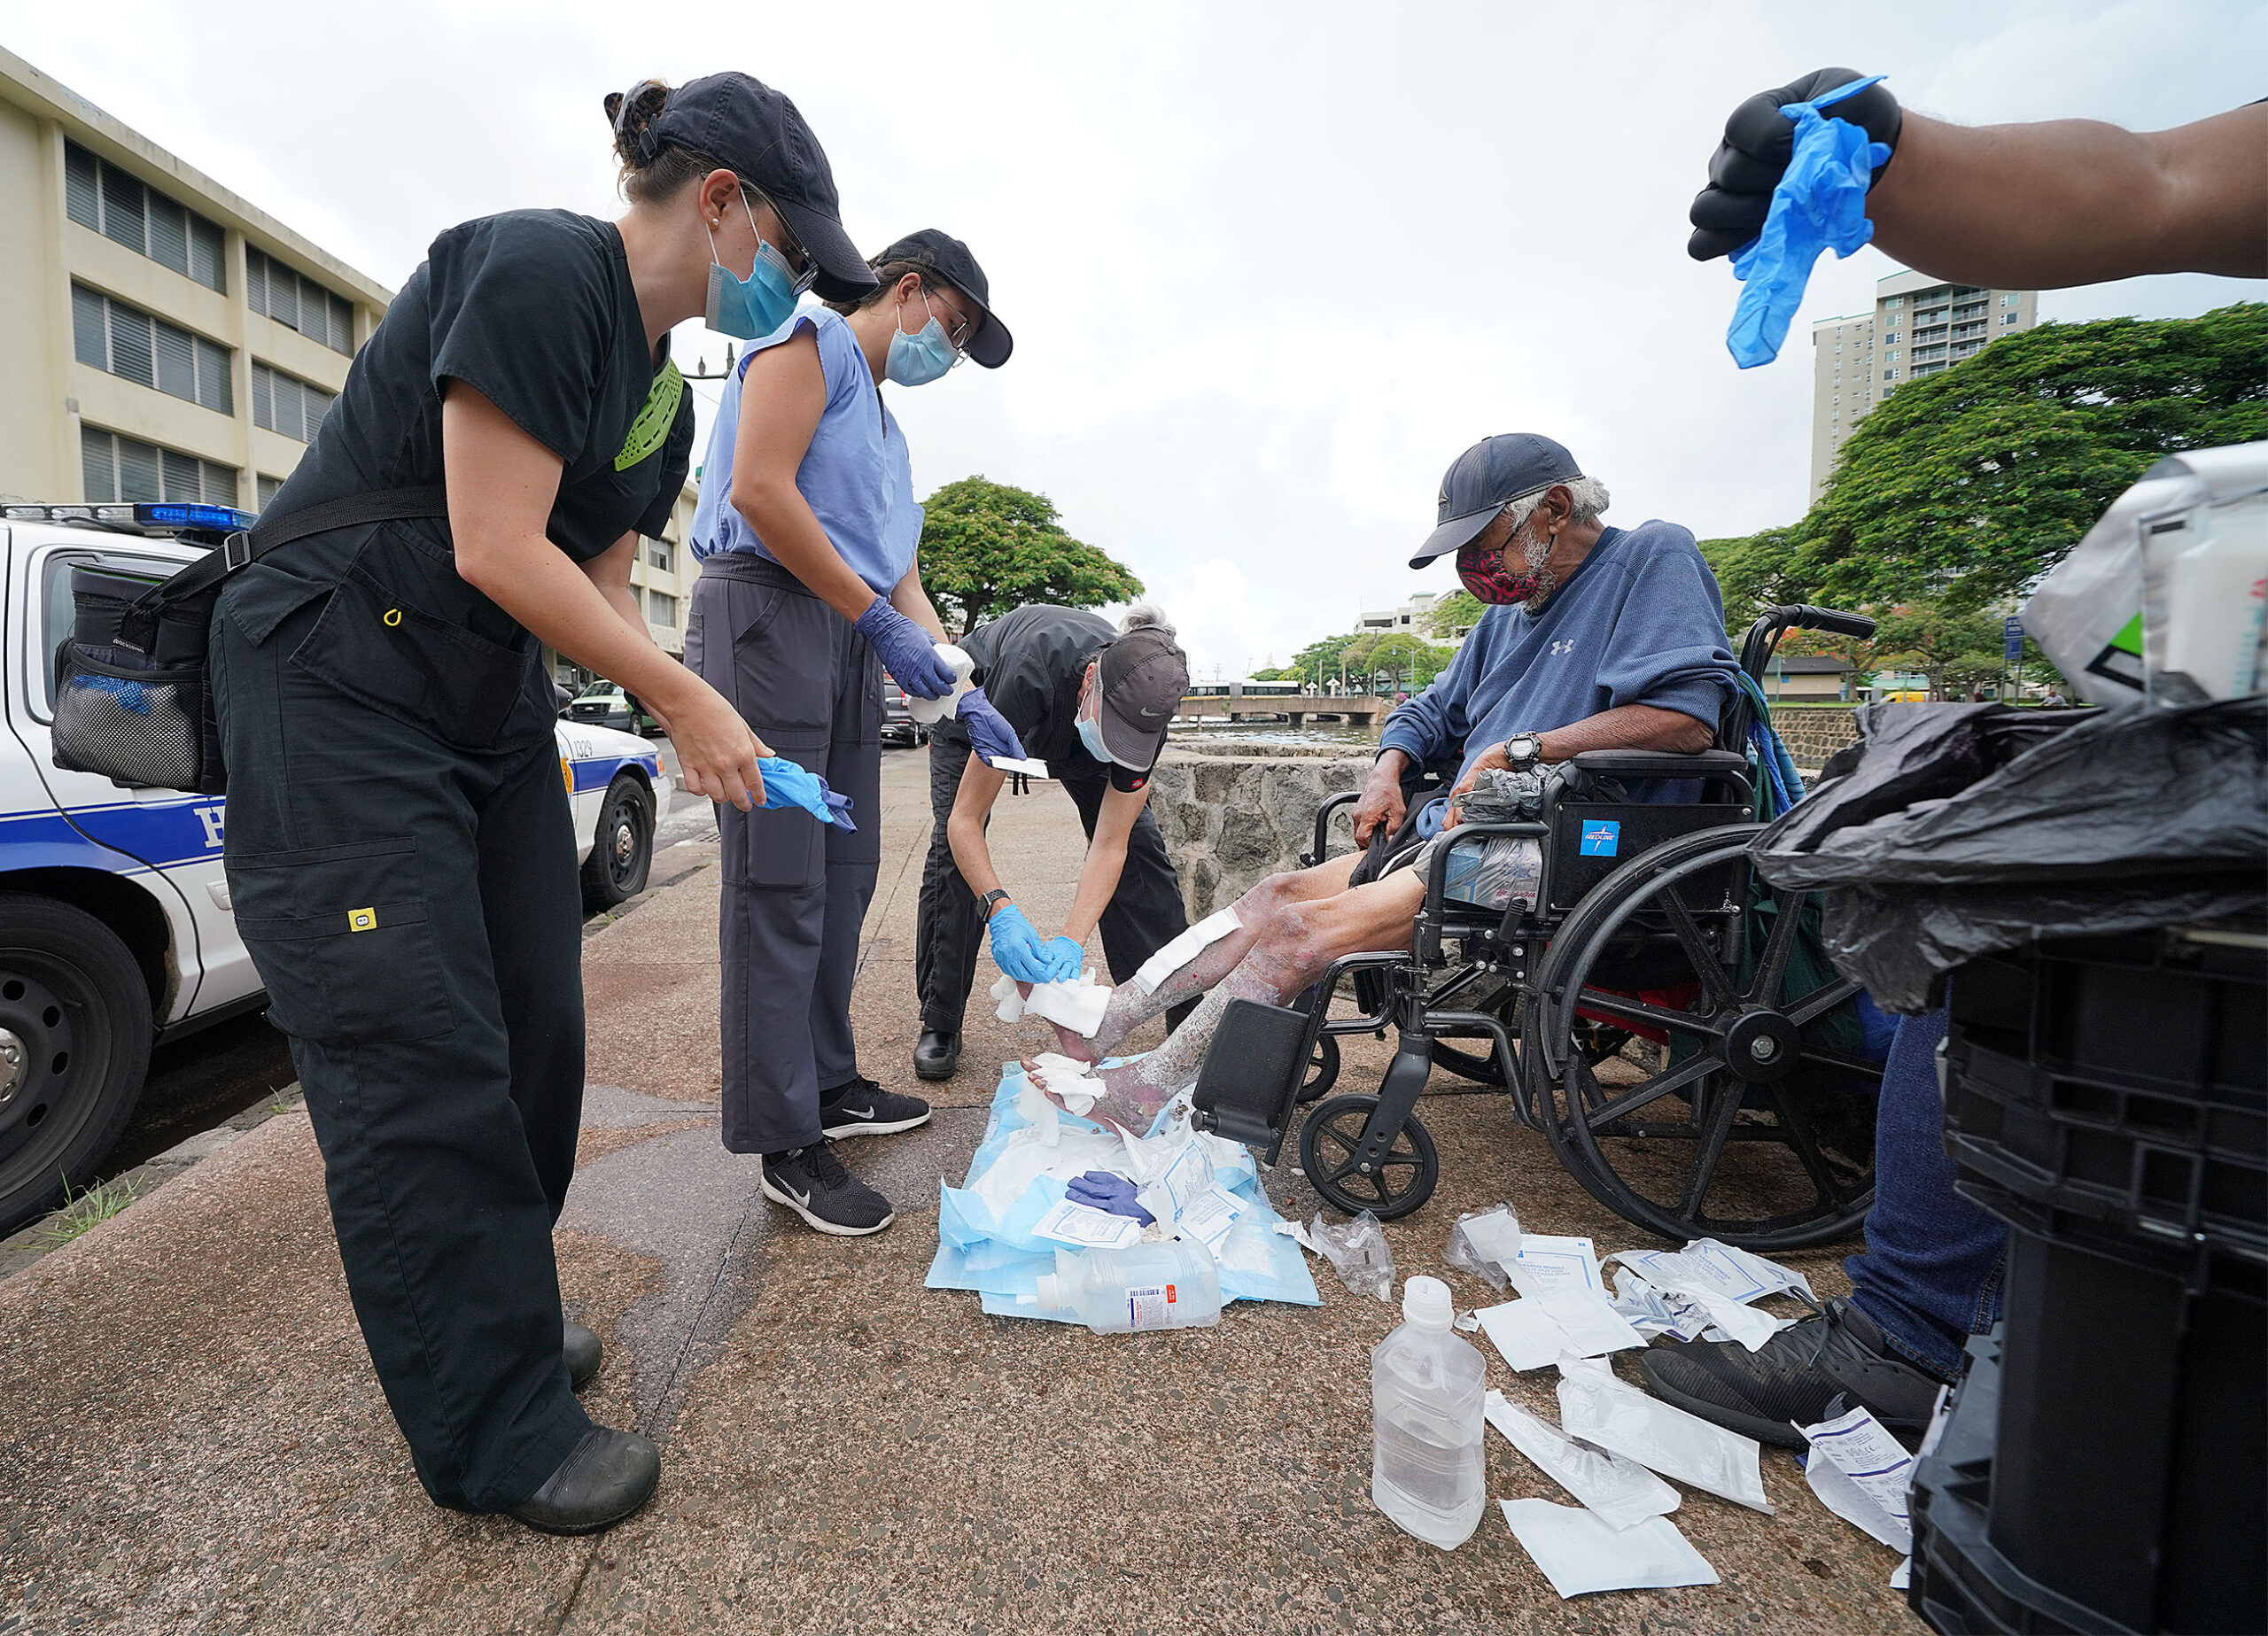 <p>The Hawaii Health and Harm Reduction Center's wound care and medical outreach team visits homeless along River Street twice a week to help them avoid trips to the emergency room. The team focuses on cleaning wounds but also orders prescription medications and antibiotics for patients in need.</p>